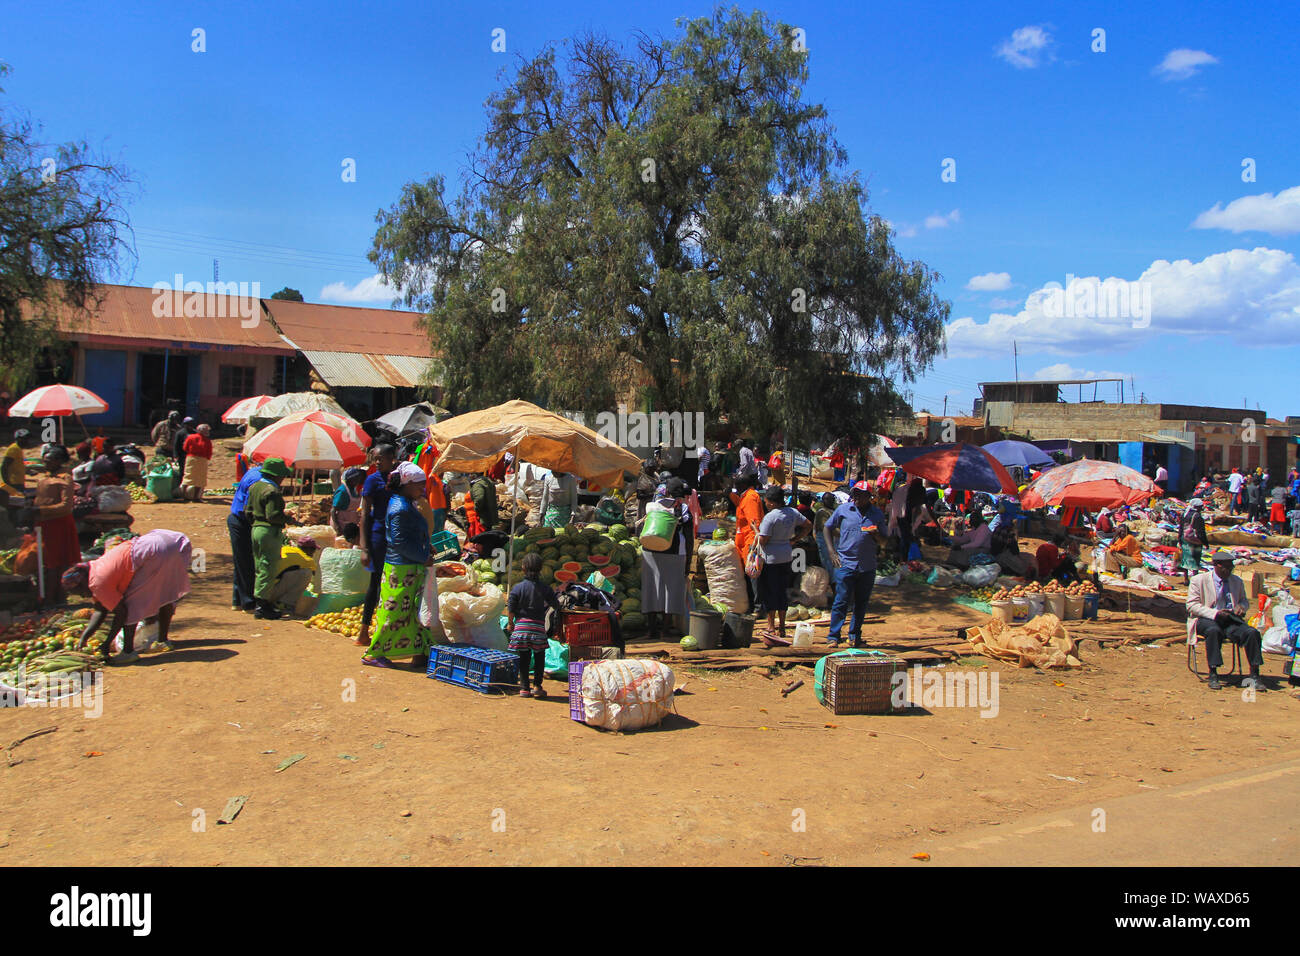 Fruit and vegetable market Kenya, East Africa. Local people buying and selling produce at side of road under sun parasols Stock Photo